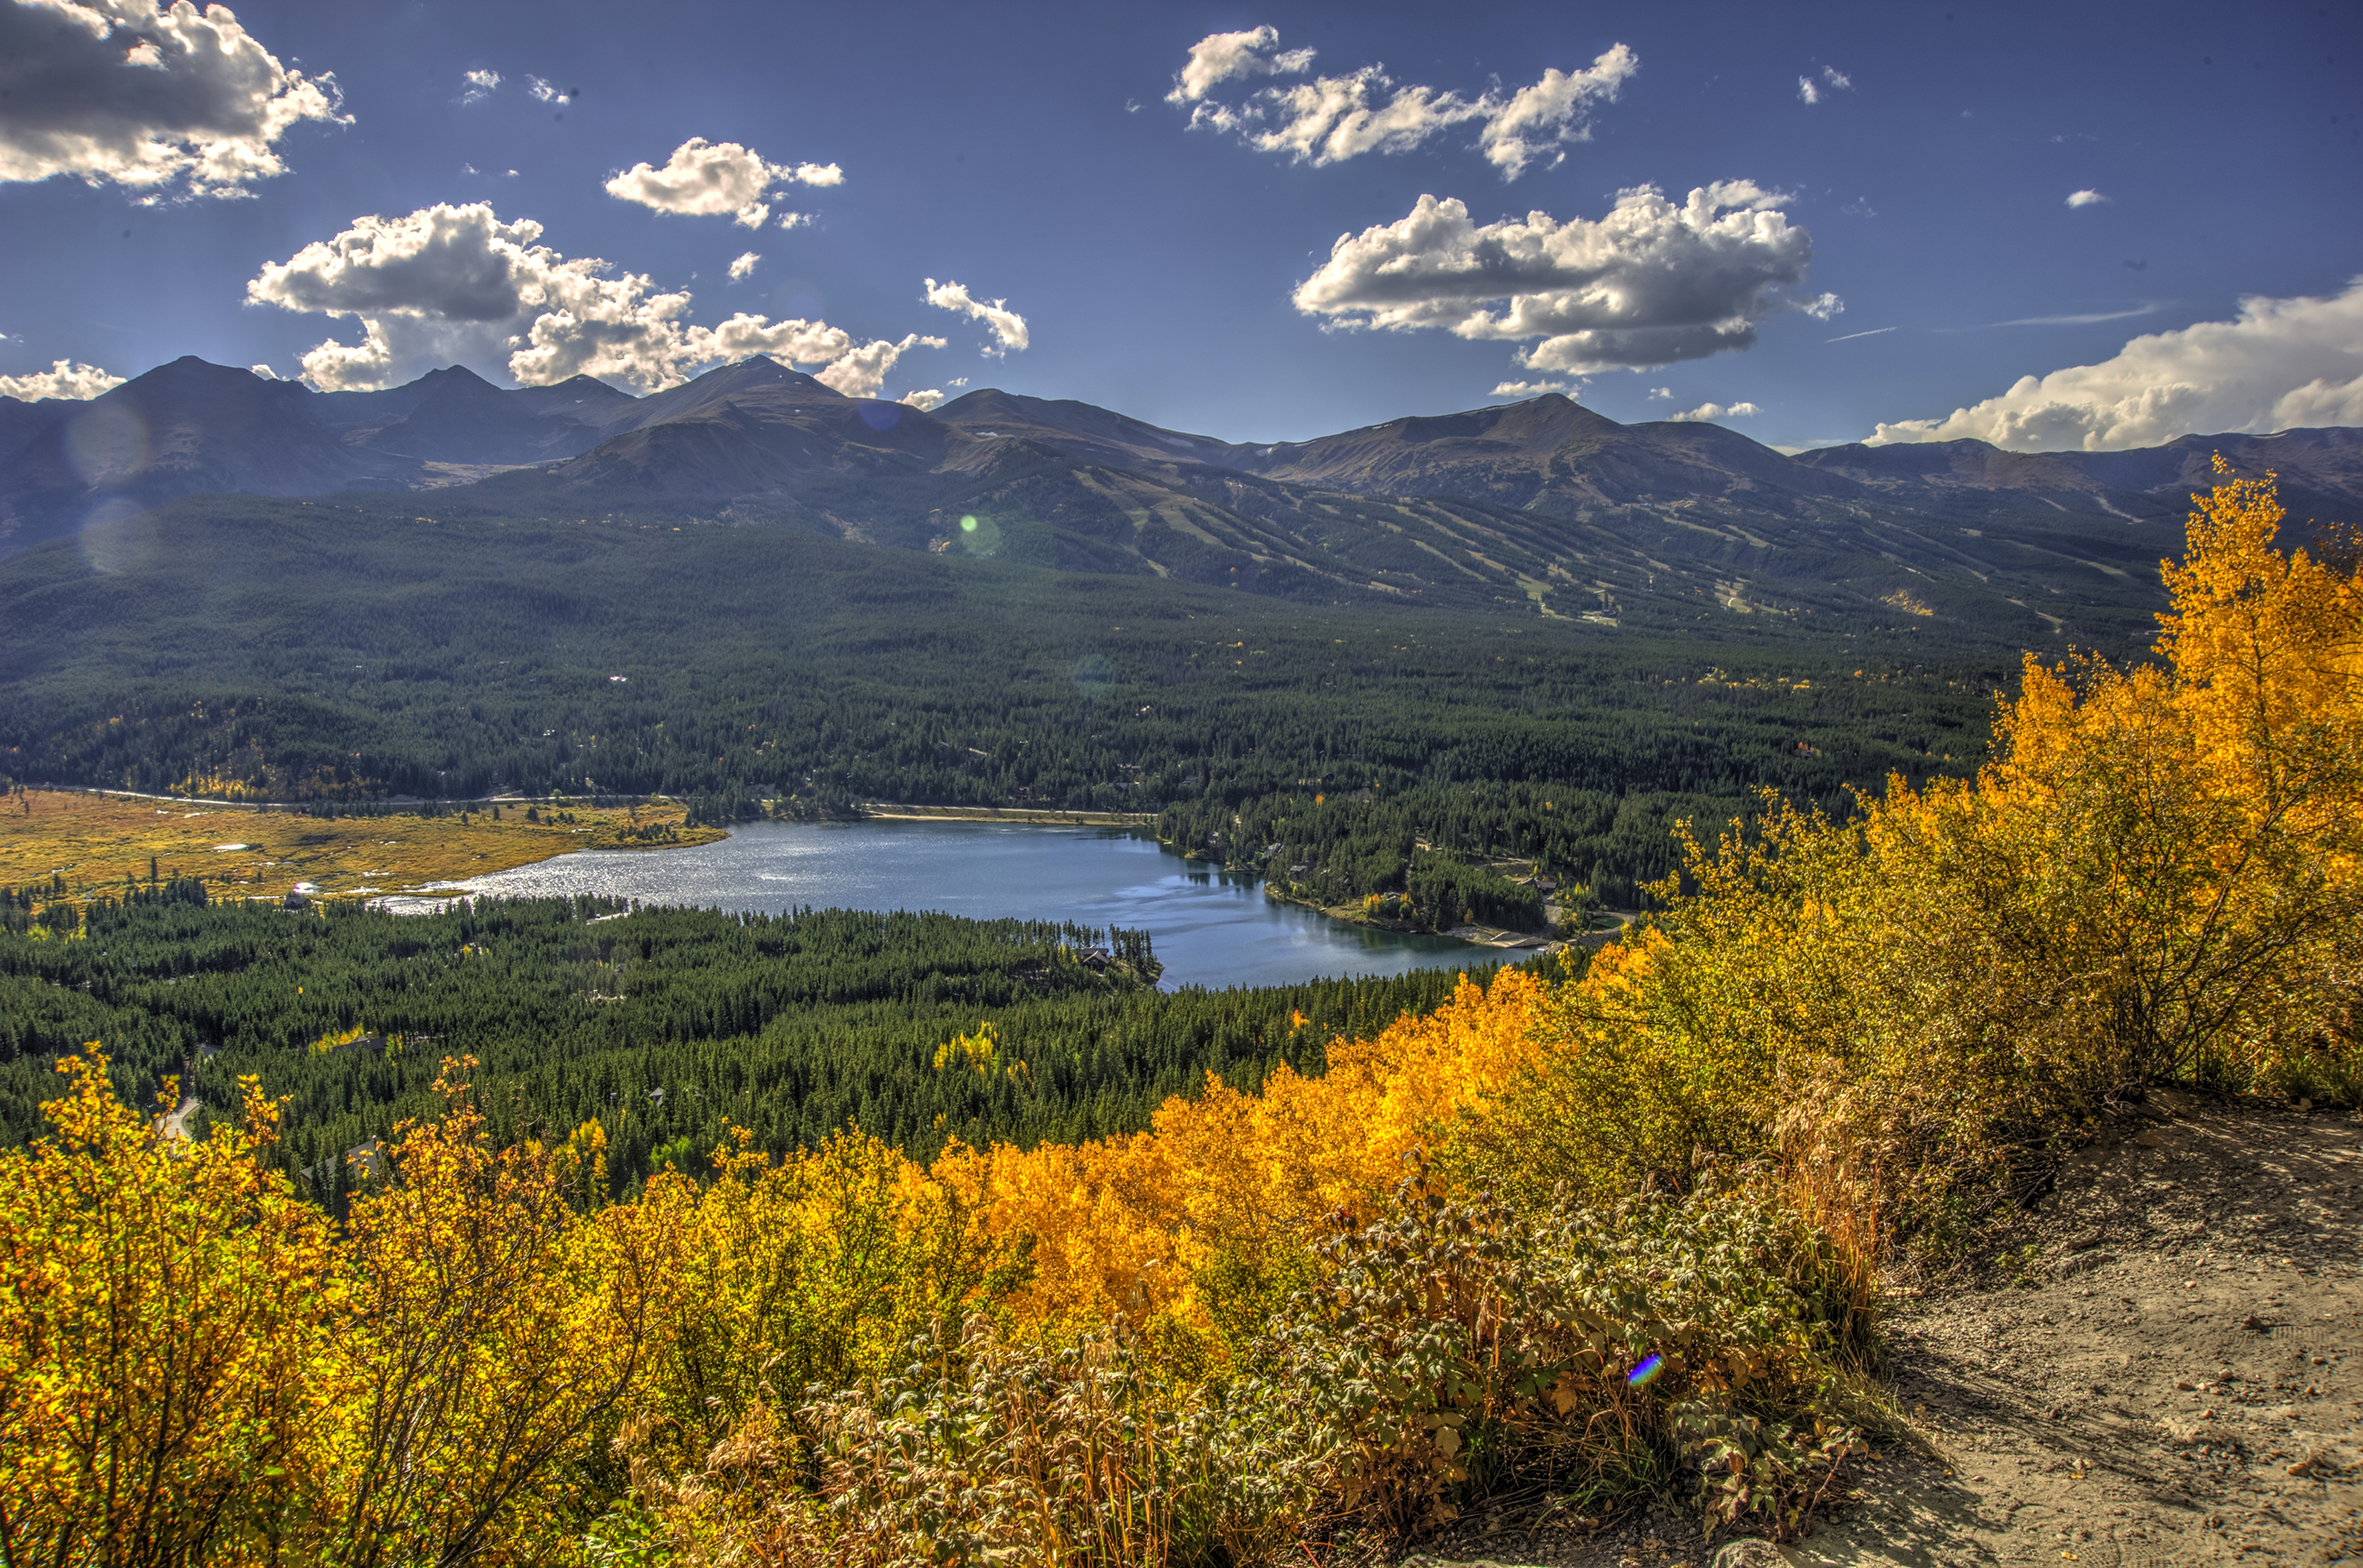 Fall colors come early and in spectacular fashion to Breckenridge, Colorado.